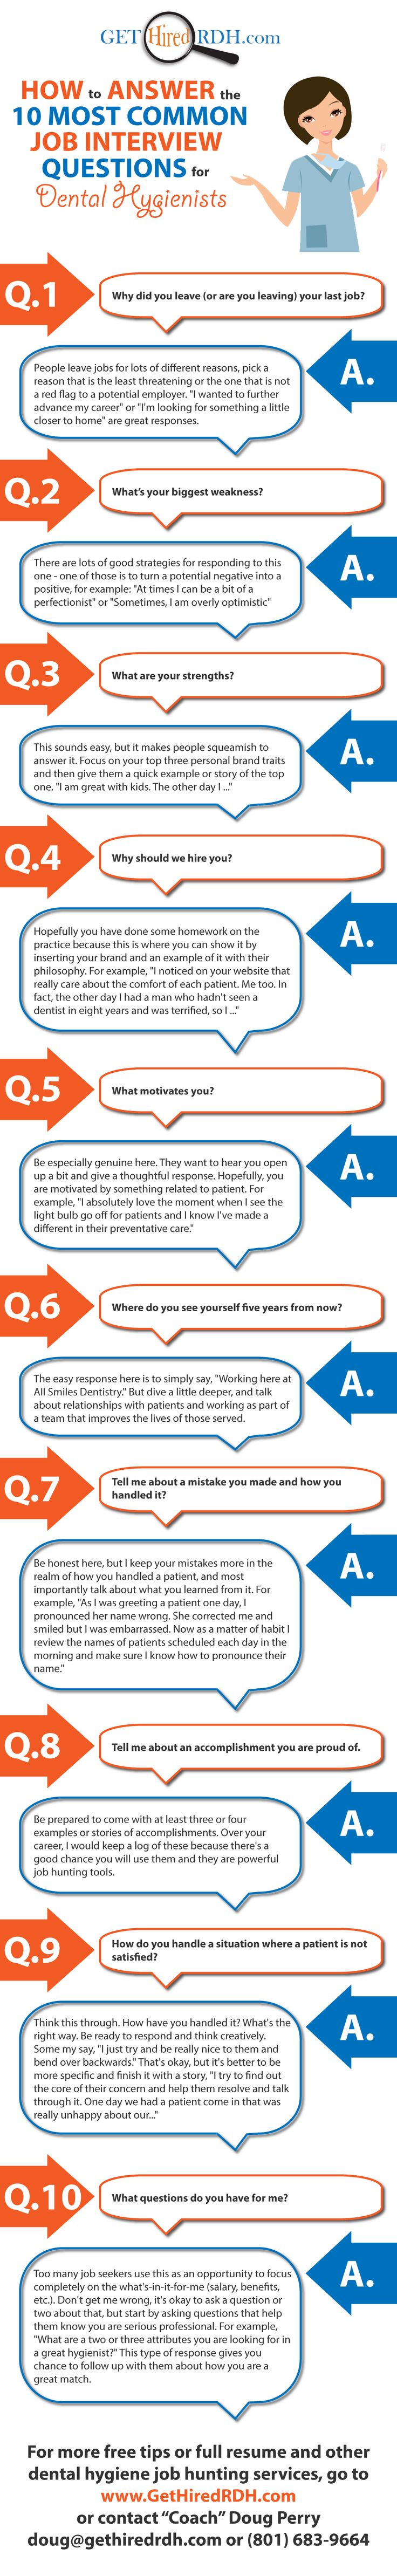 best ideas about interview questions job how to answer the 10 most common interview questions for dental hygienists get more at gethiredrdh